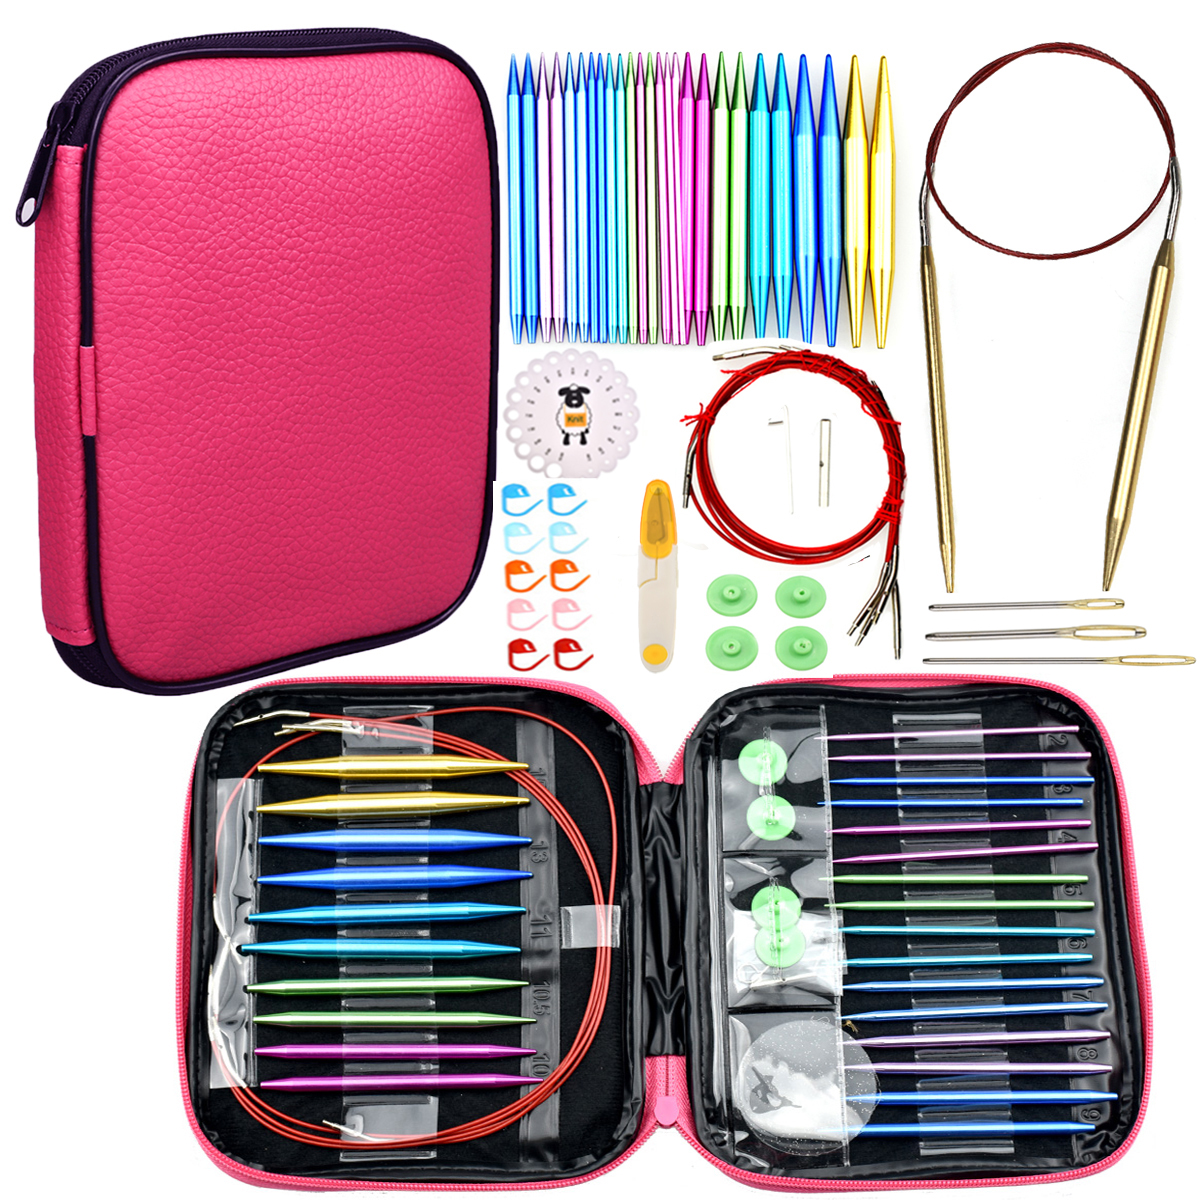 26pcs Aluminum Change Head Circular DIY Knitting Needles Crochet Scissors Needles Sewing Accessories Crochet Hook Set With Case